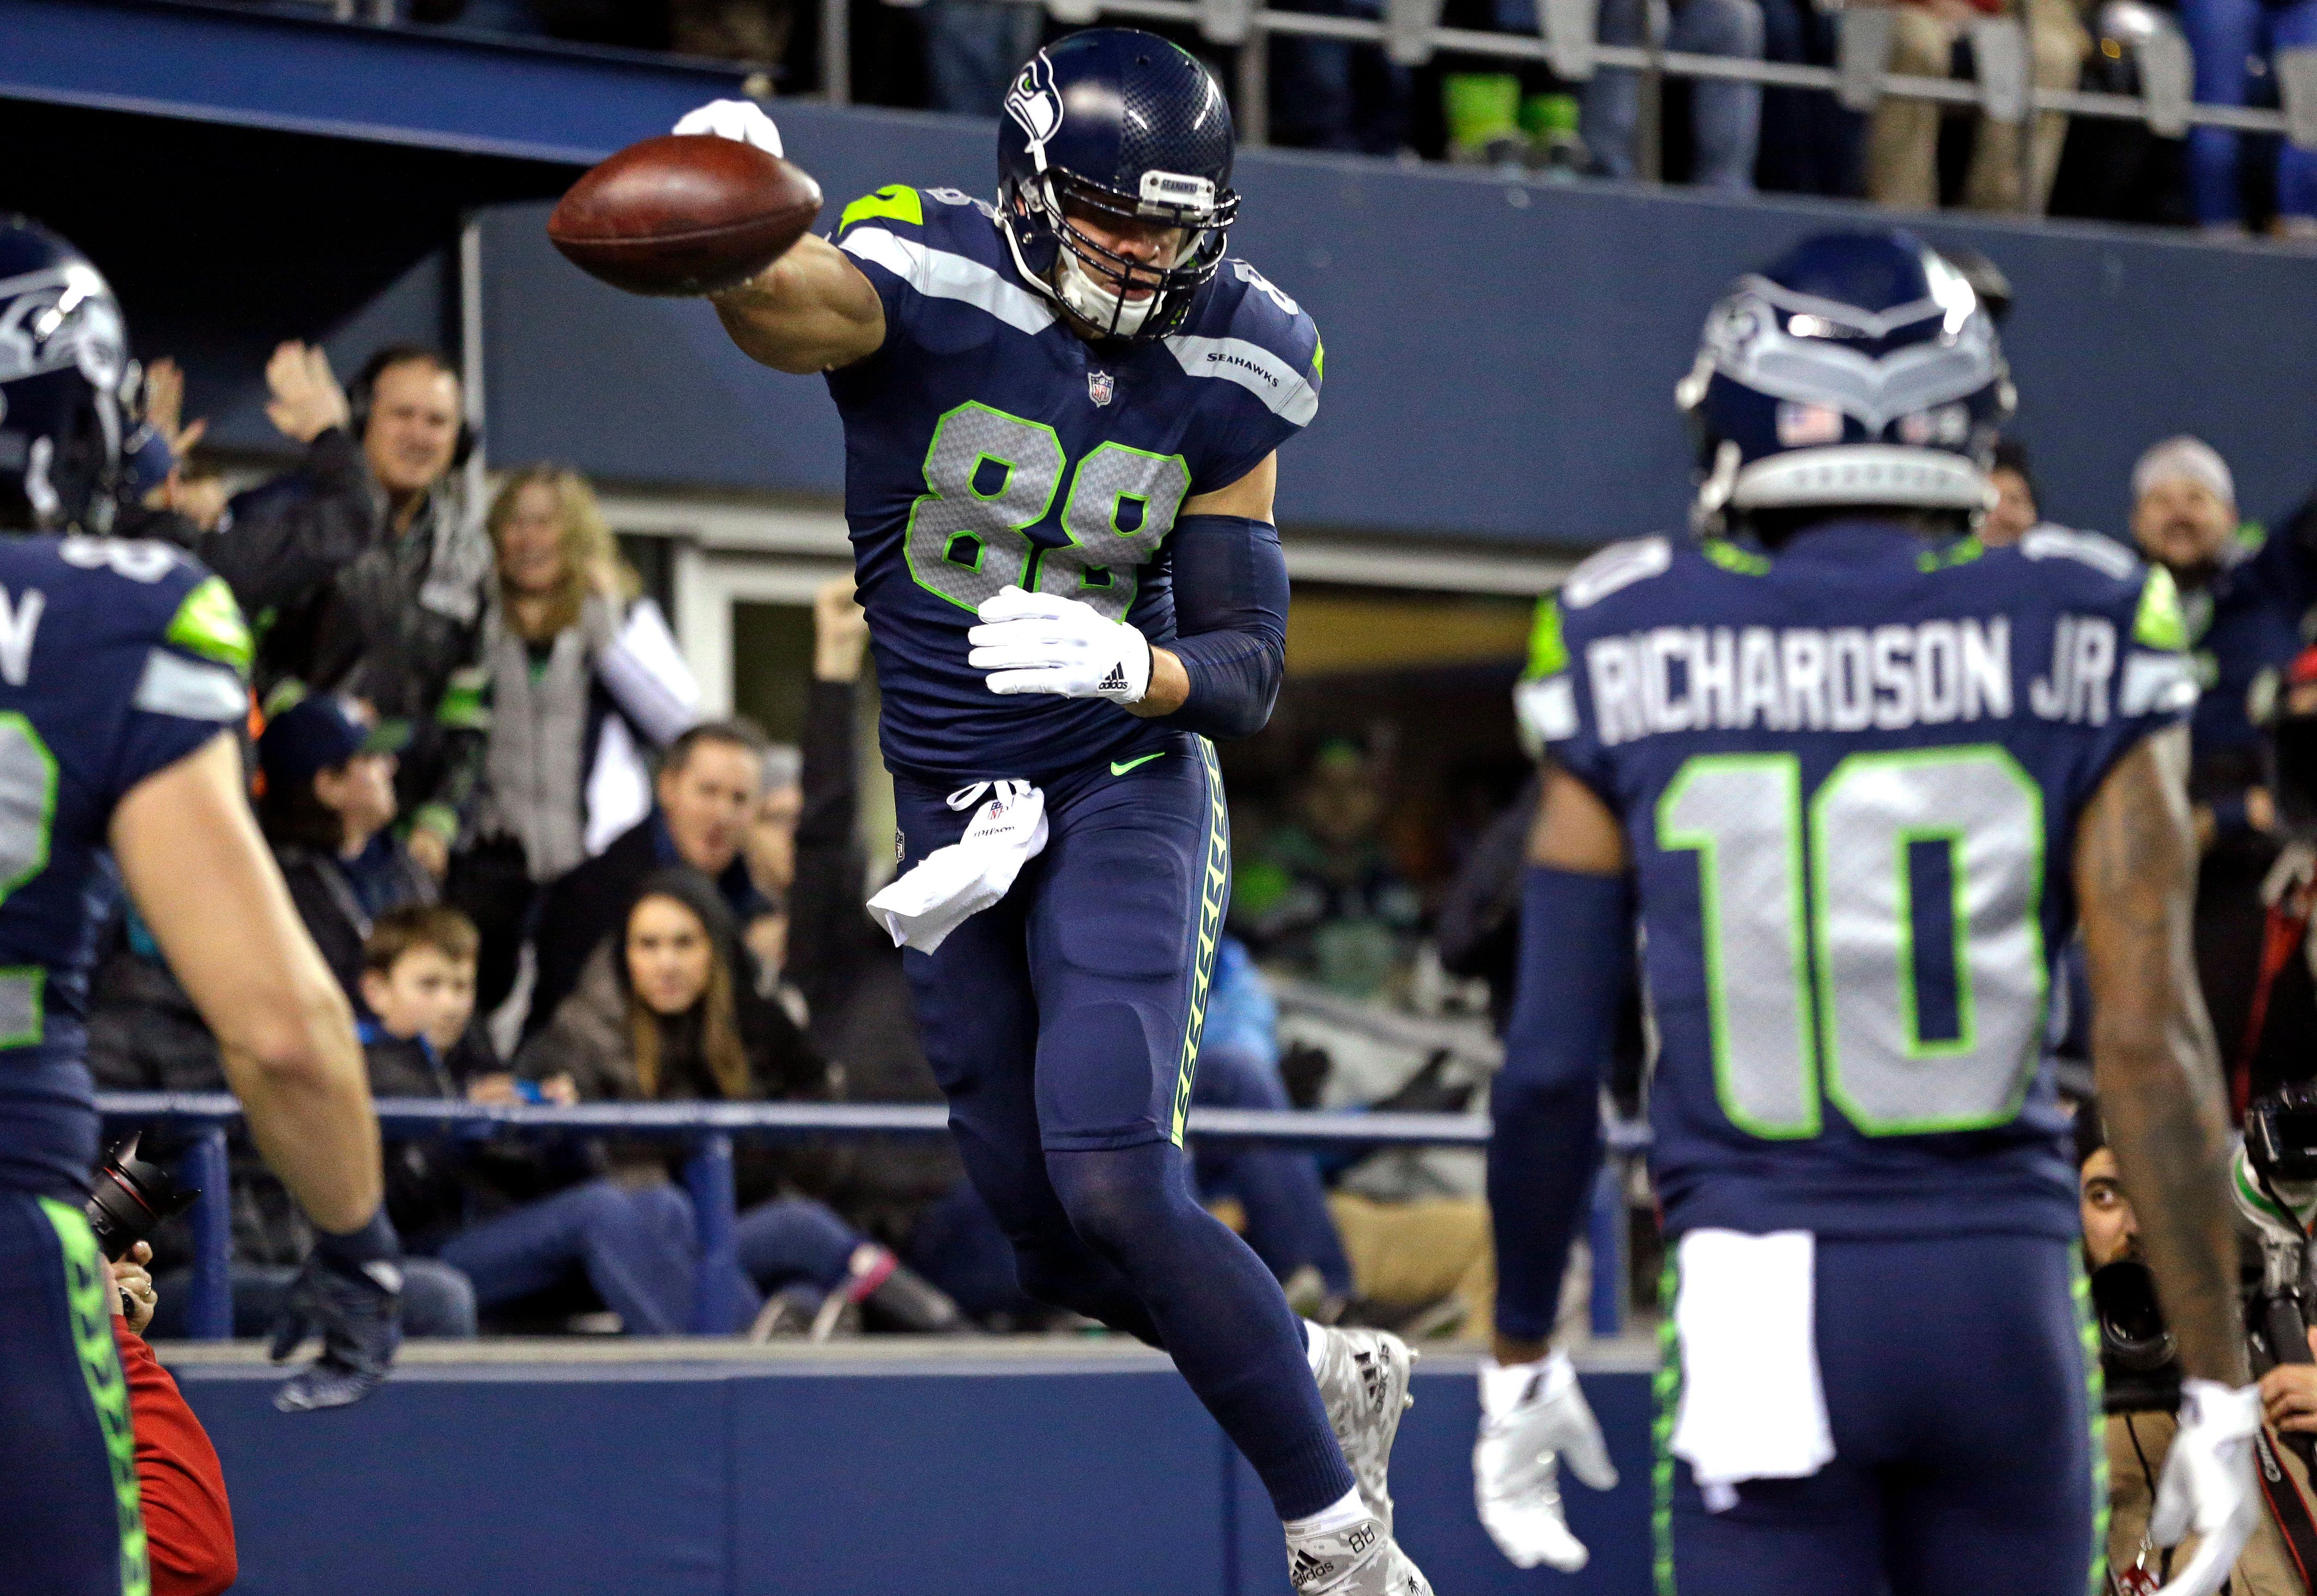 Seattle Seahawks' Jimmy Graham leaps to spike the ball after scoring a touchdown on an 11-yard pass reception against the Philadelphia Eagles during the first half of an NFL football game, Sunday, Dec. 3, 2017, in Seattle. (AP Photo/Ted S. Warren)